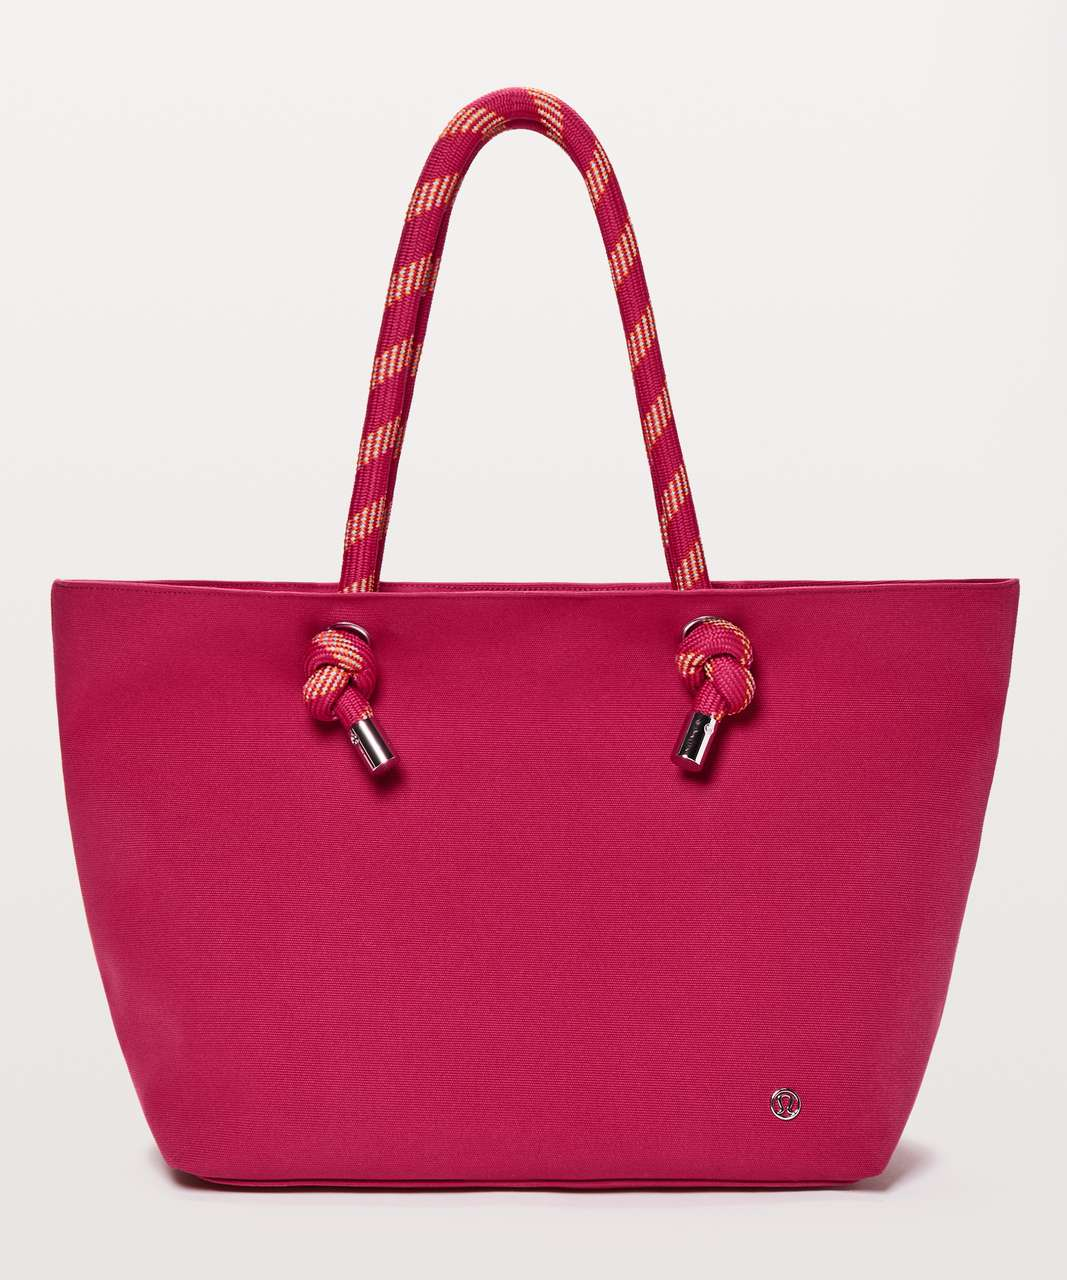 Lululemon Harbour Tote *23L - Ruby Red